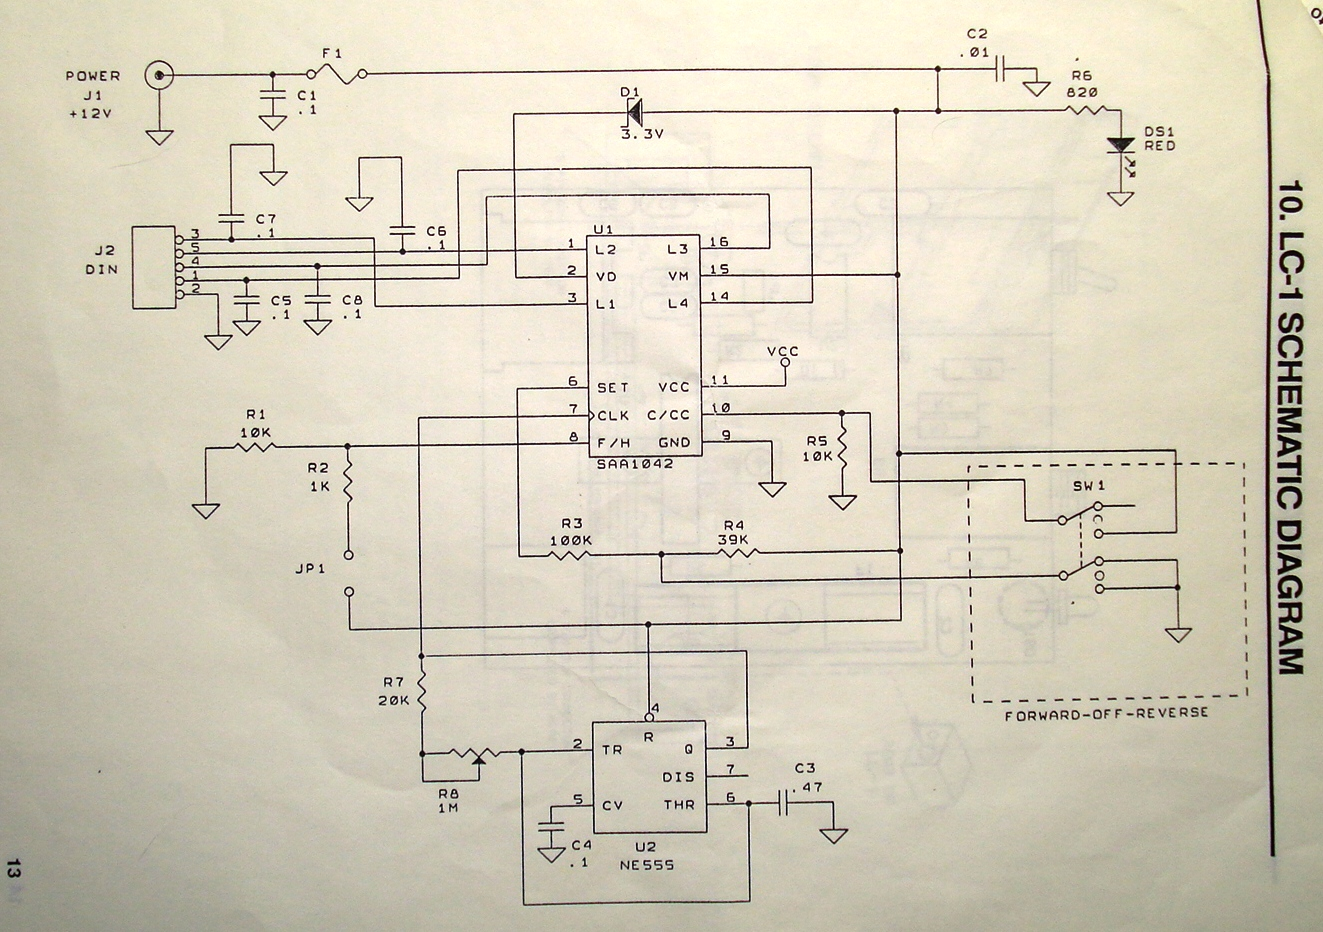 Stepper Motor Control Using Ic 555 Controller Circuit Get To Know Your And The Saa1042 Driver